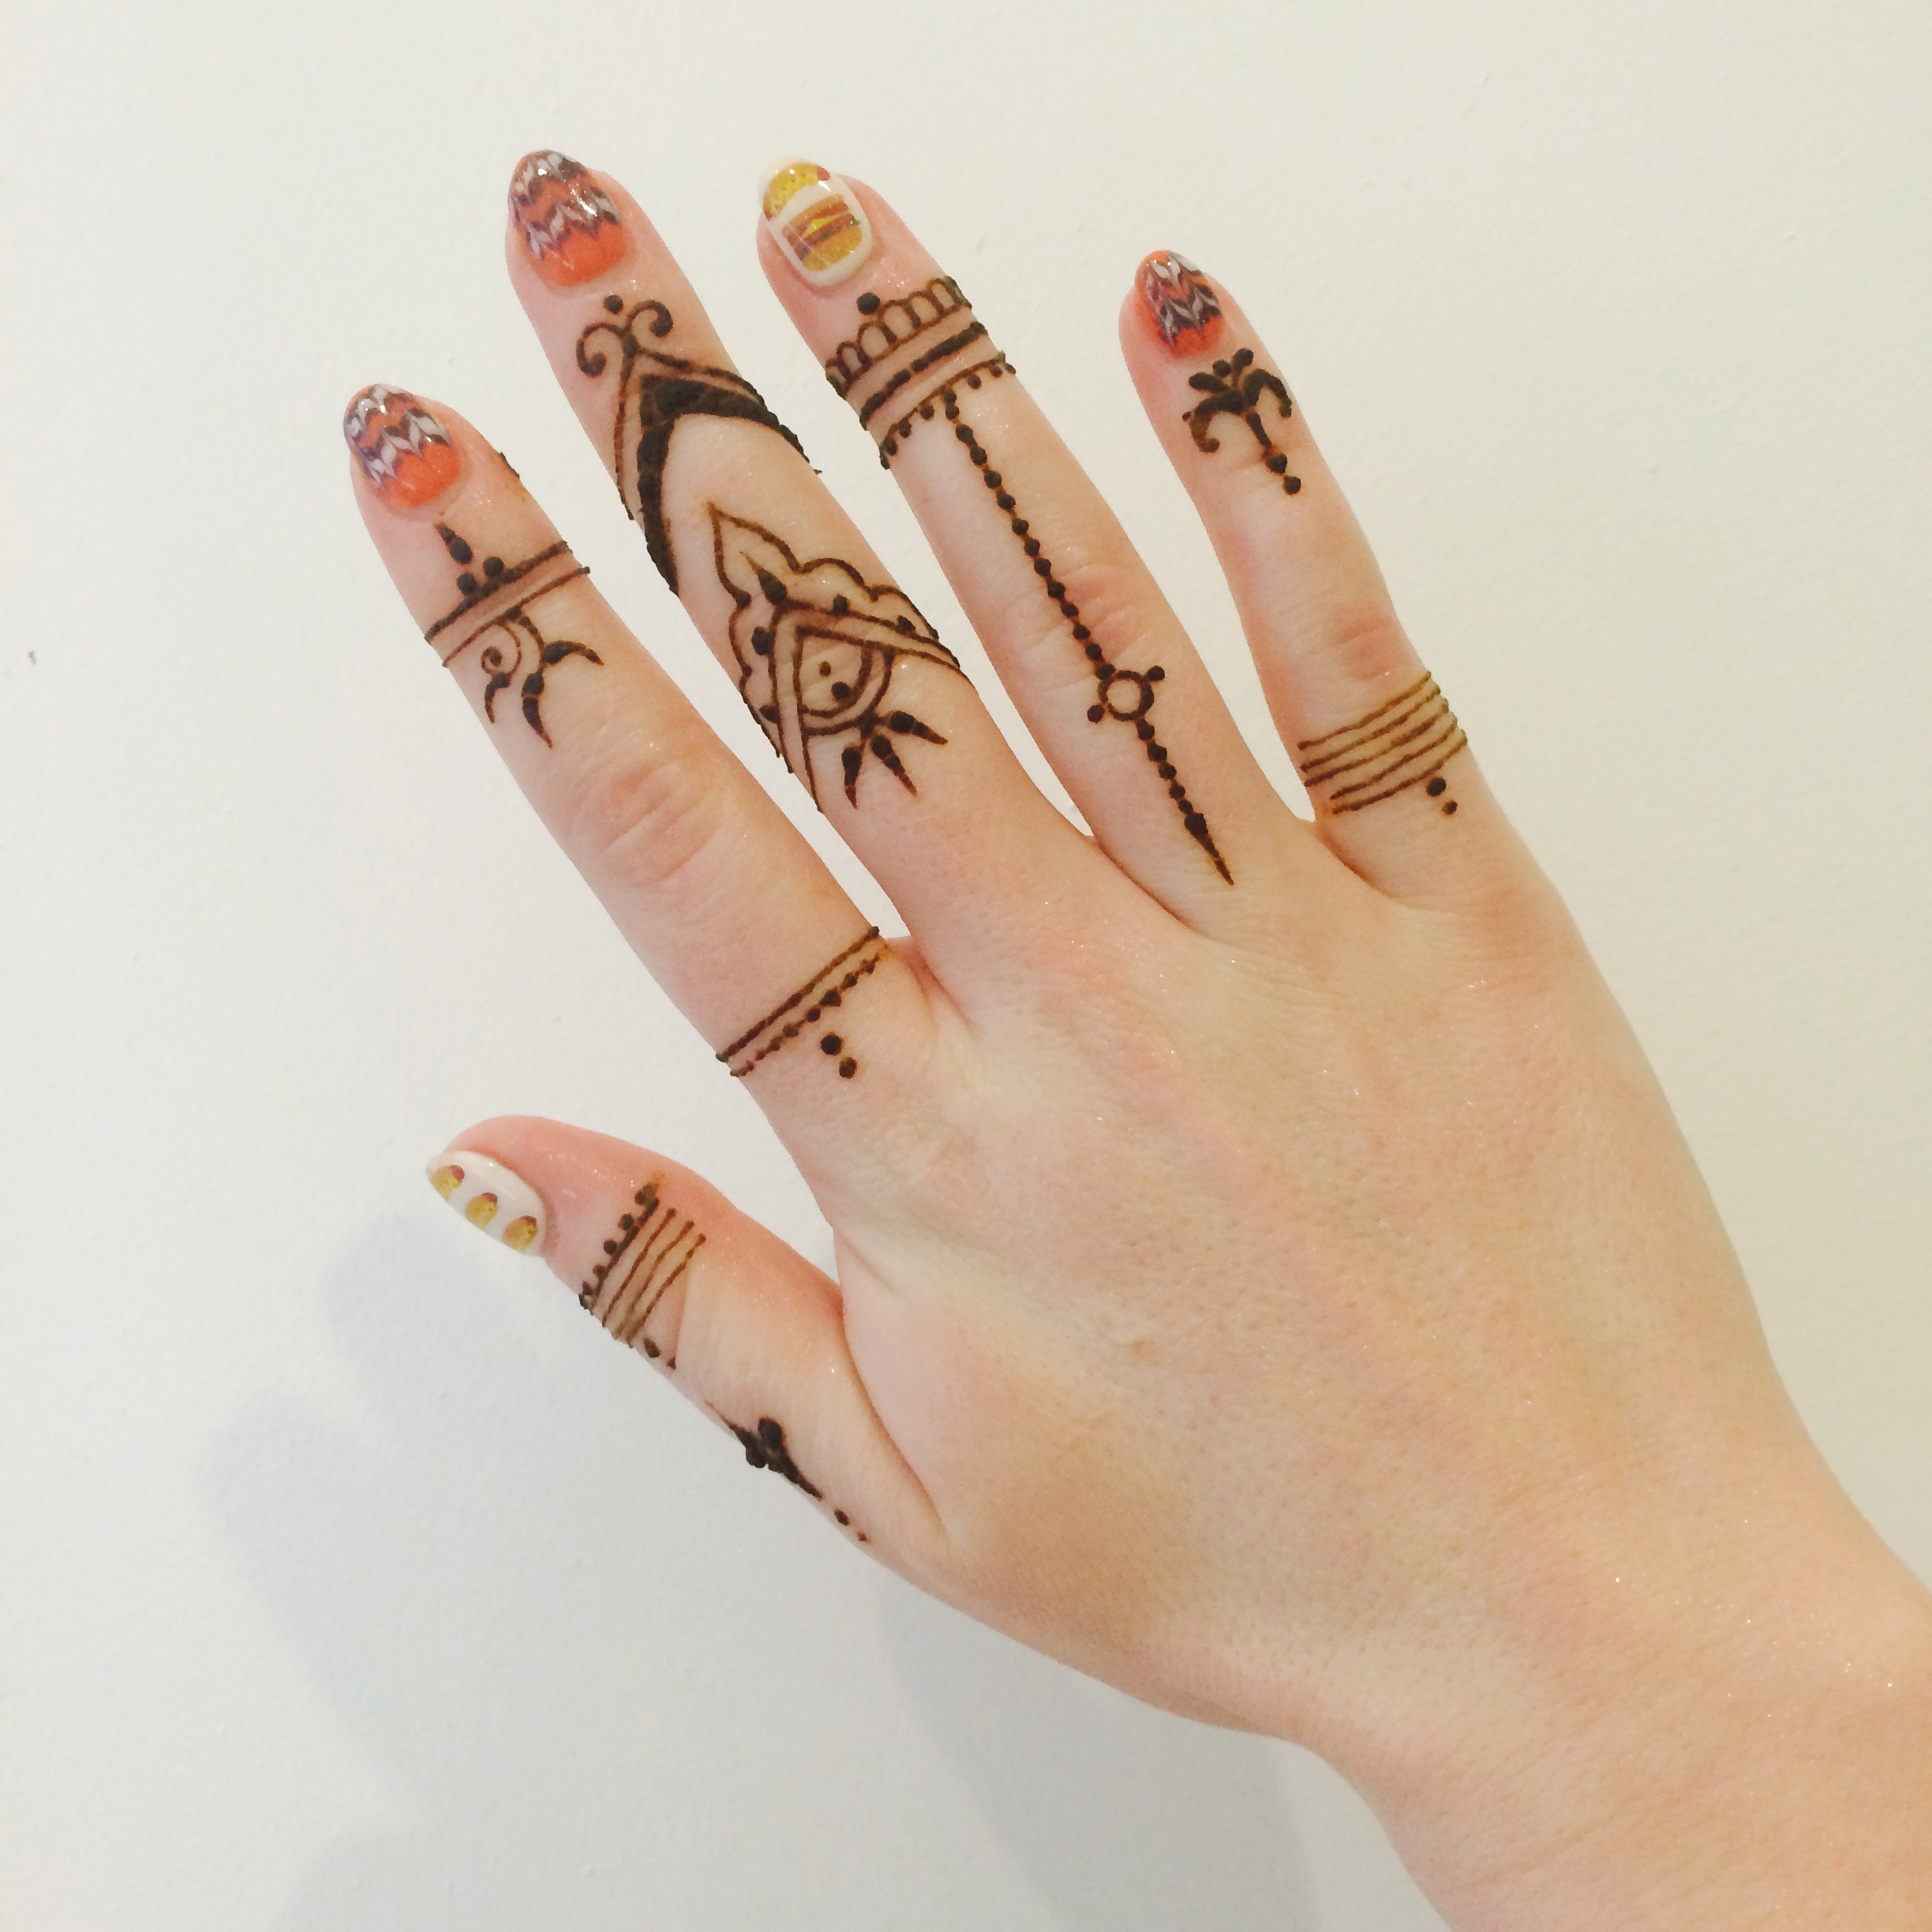 Henna Tattoo Pen: Forever Yours, Betty